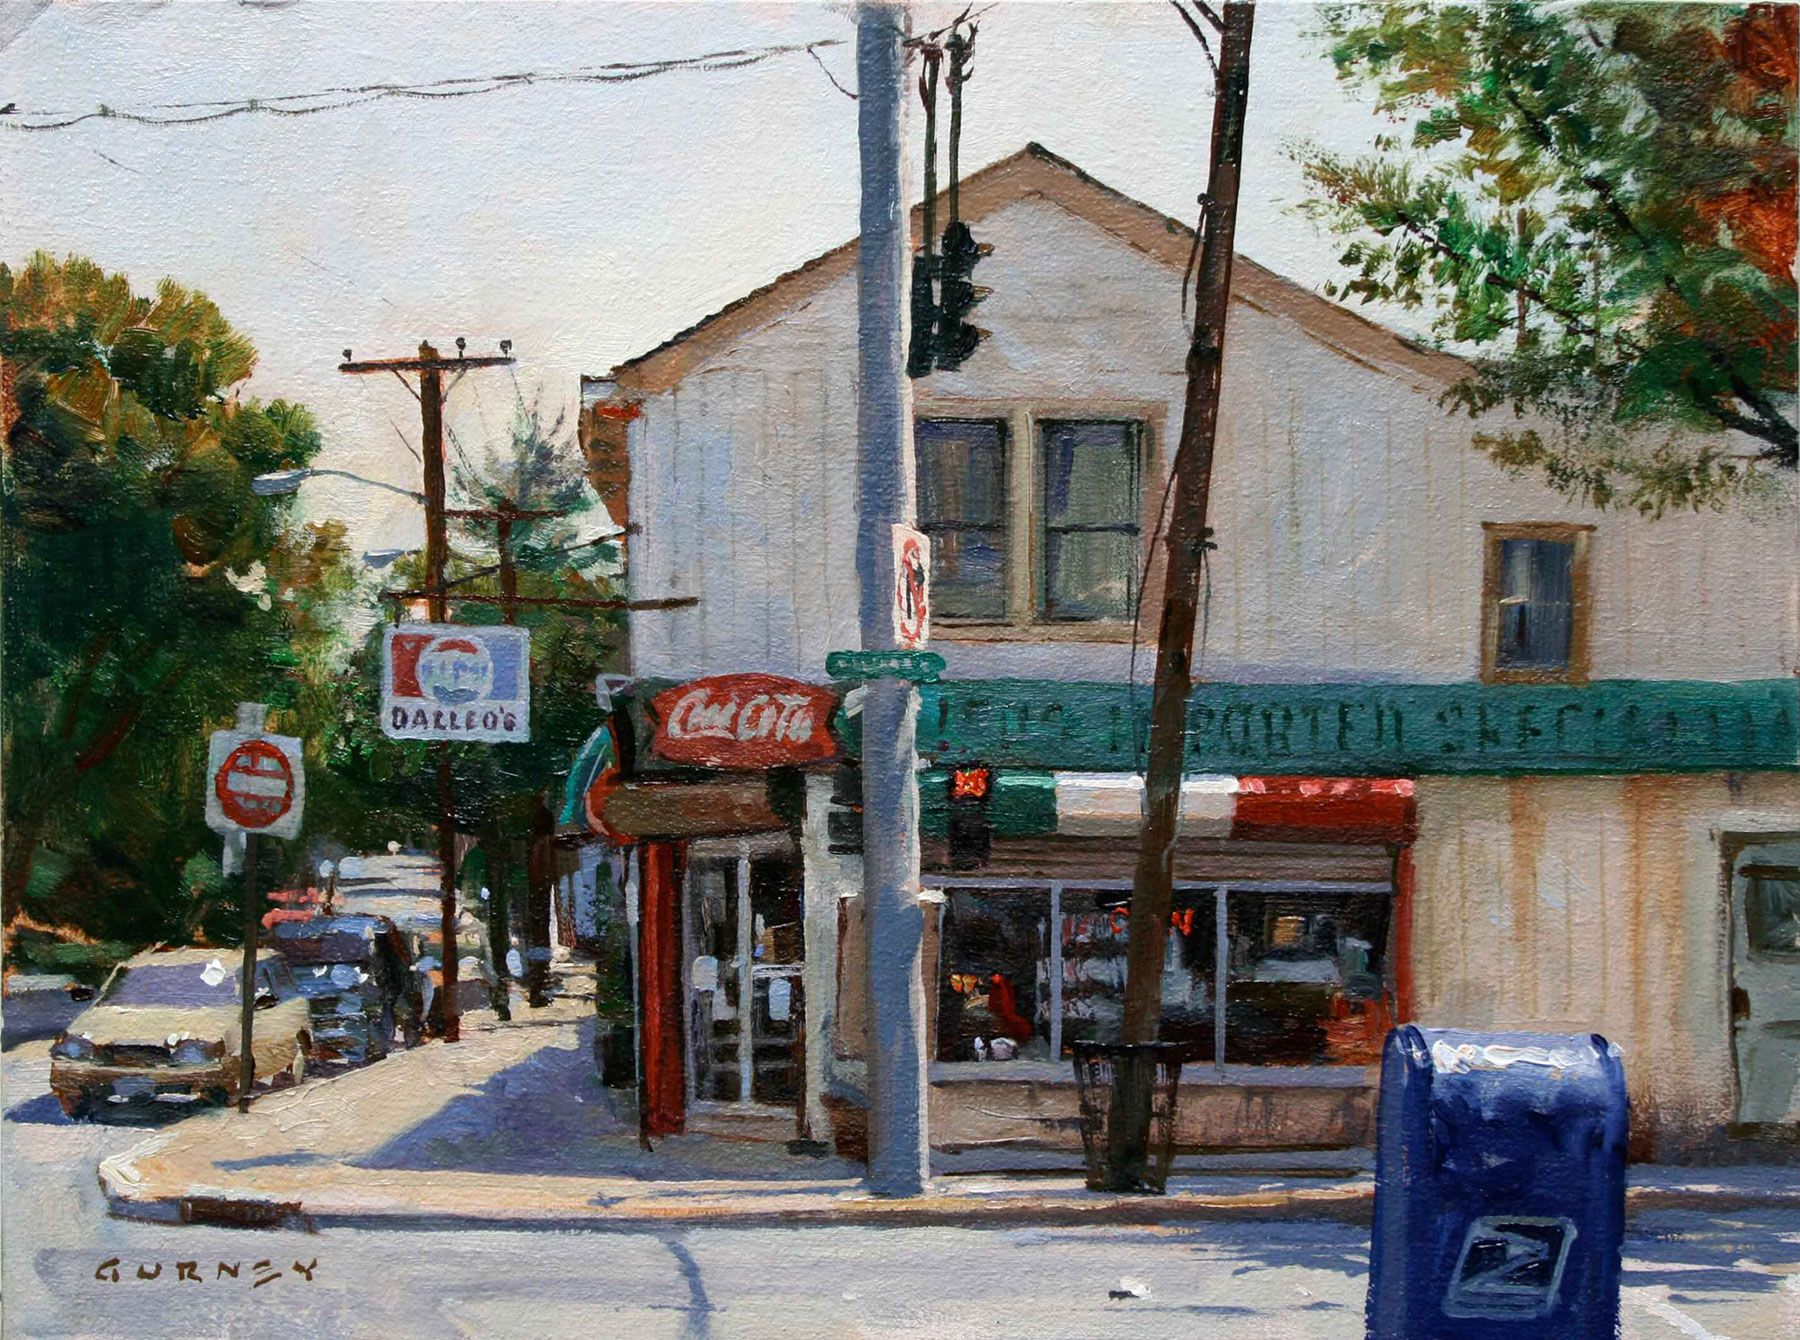 Renew watercolor artist magazine - Art Renewal Center James Gurney Dalleos Deli